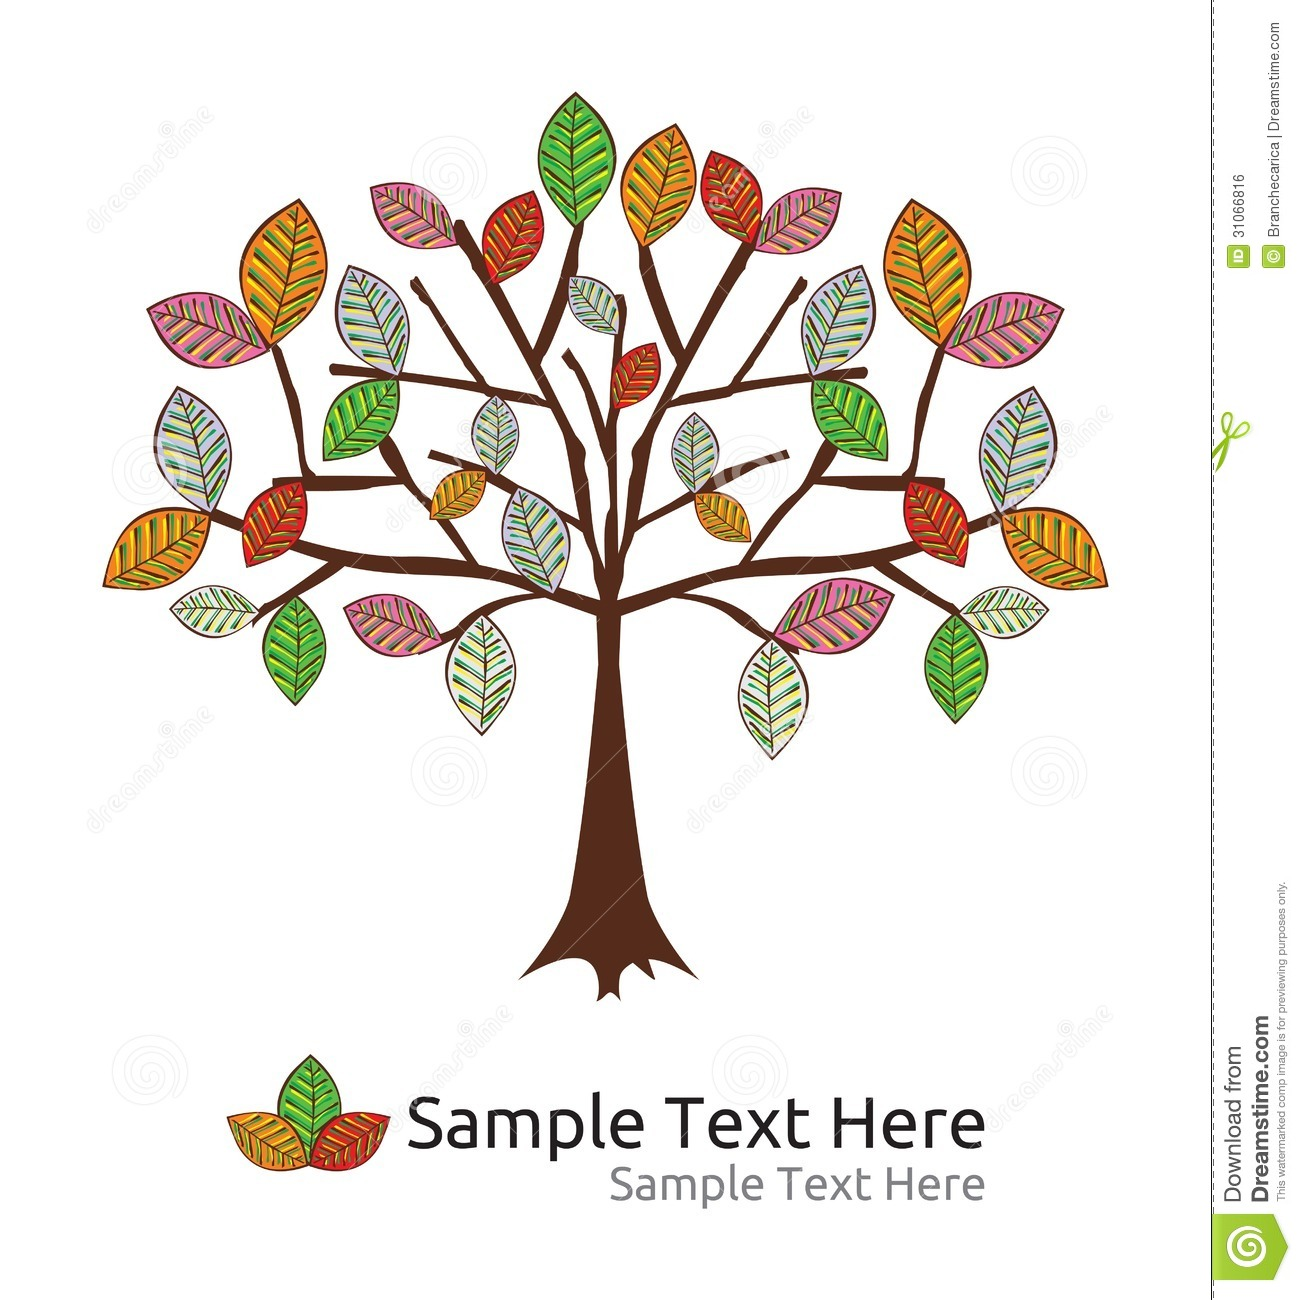 ... Tree Autumn Template Royalty Free Stock Image - Image: 31066816